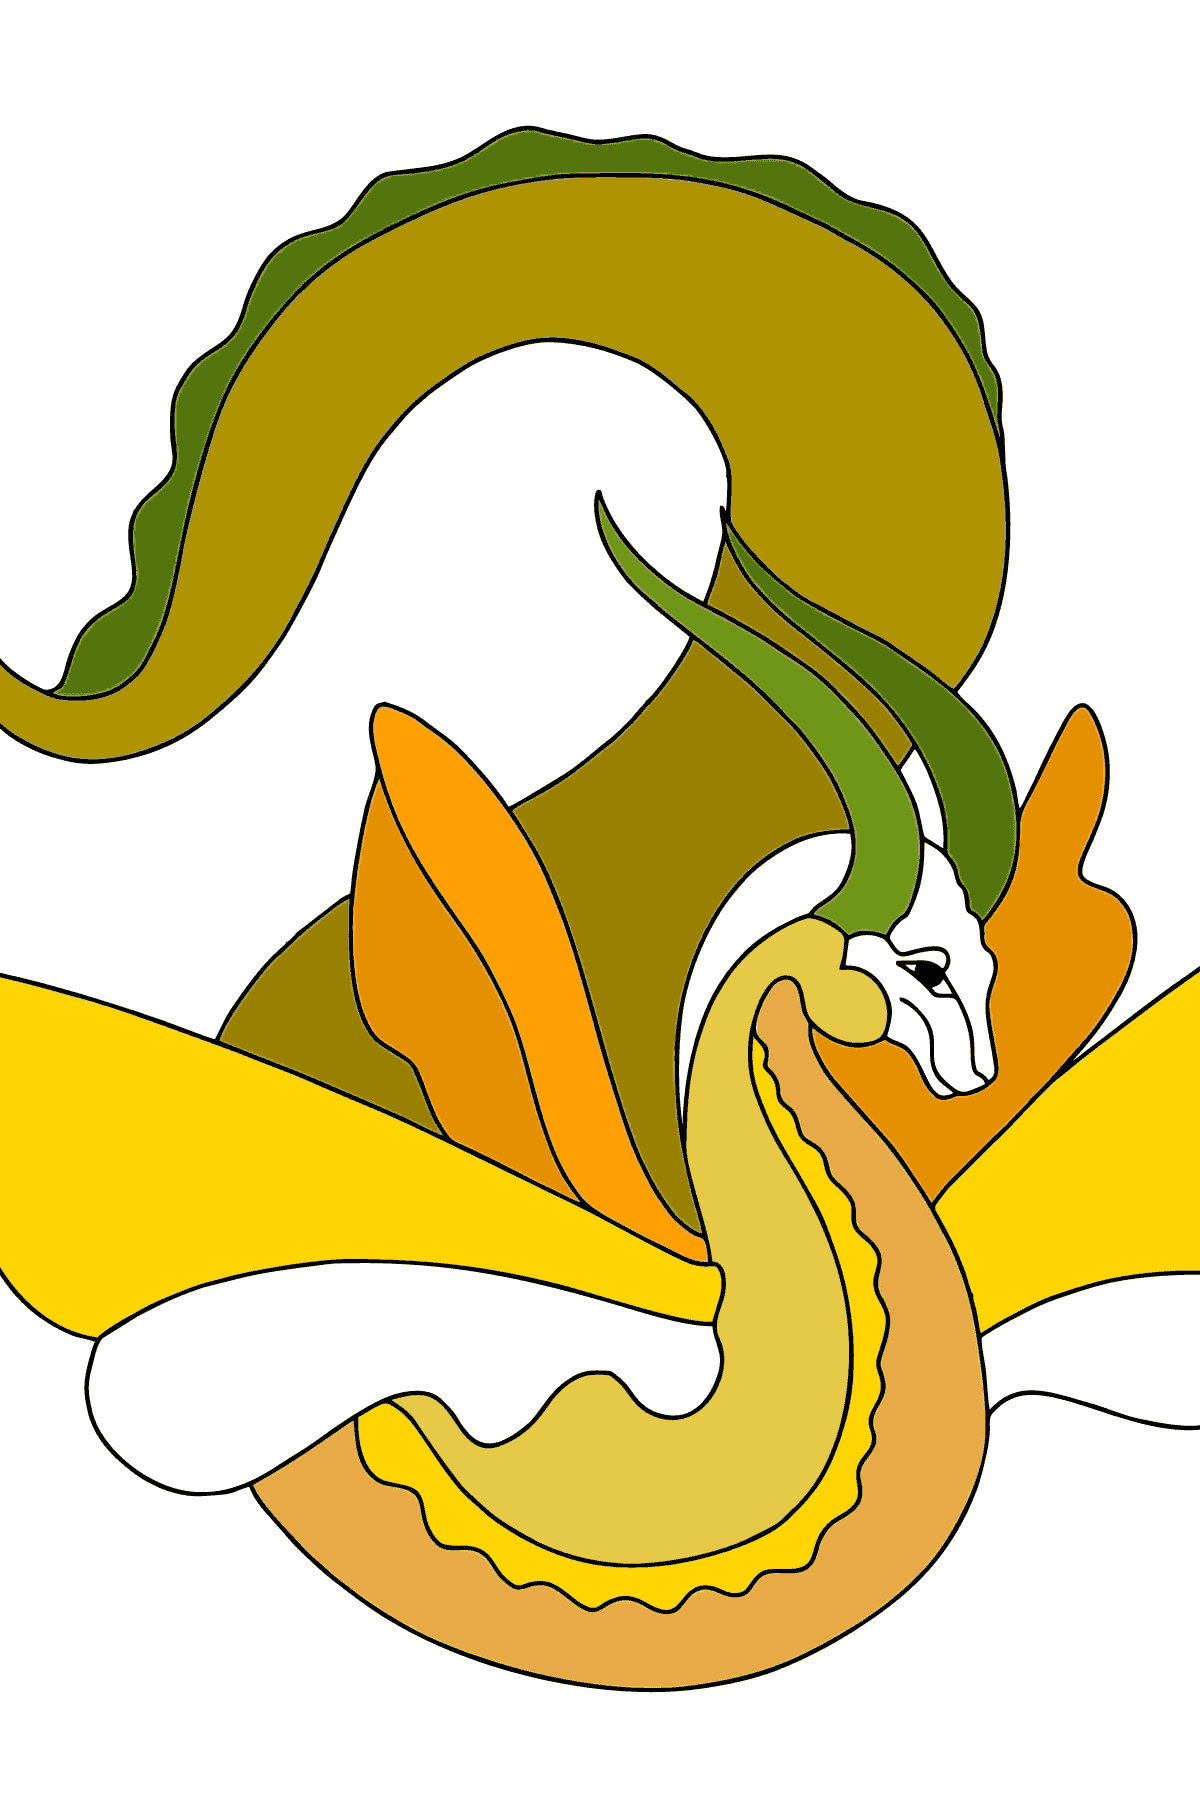 Coloring Page - A Dragon is Smiling for Kids